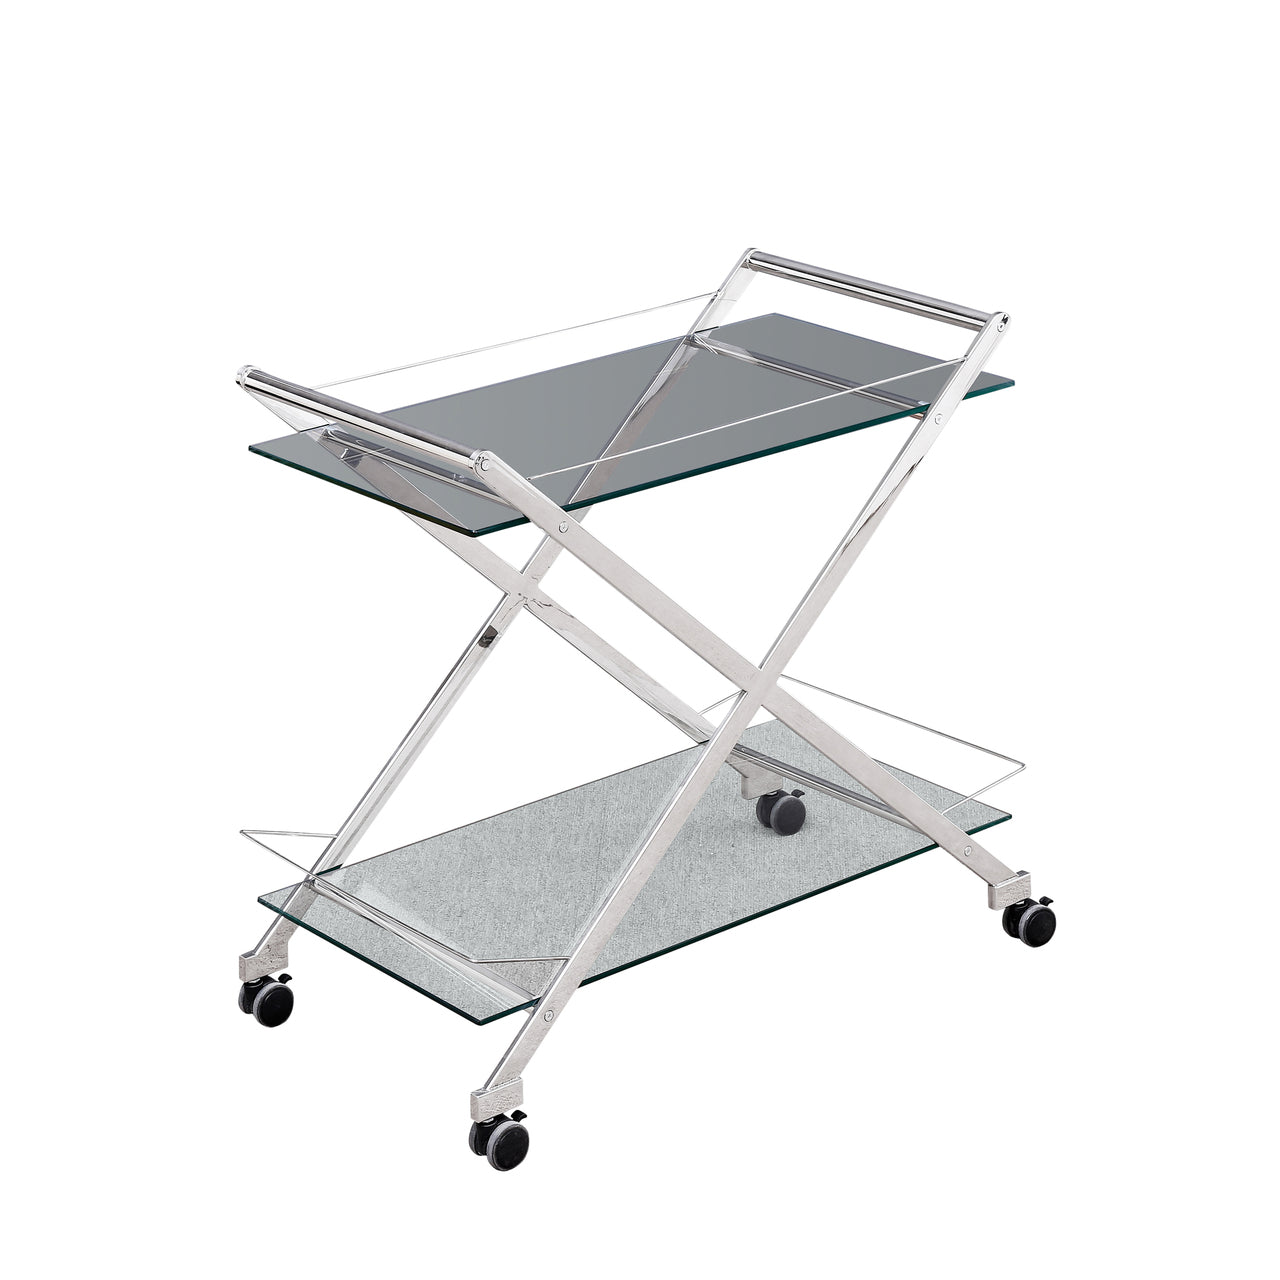 "TWO TIER 31"" ROLLING BAR CART, SILVER - Casa Muebles"